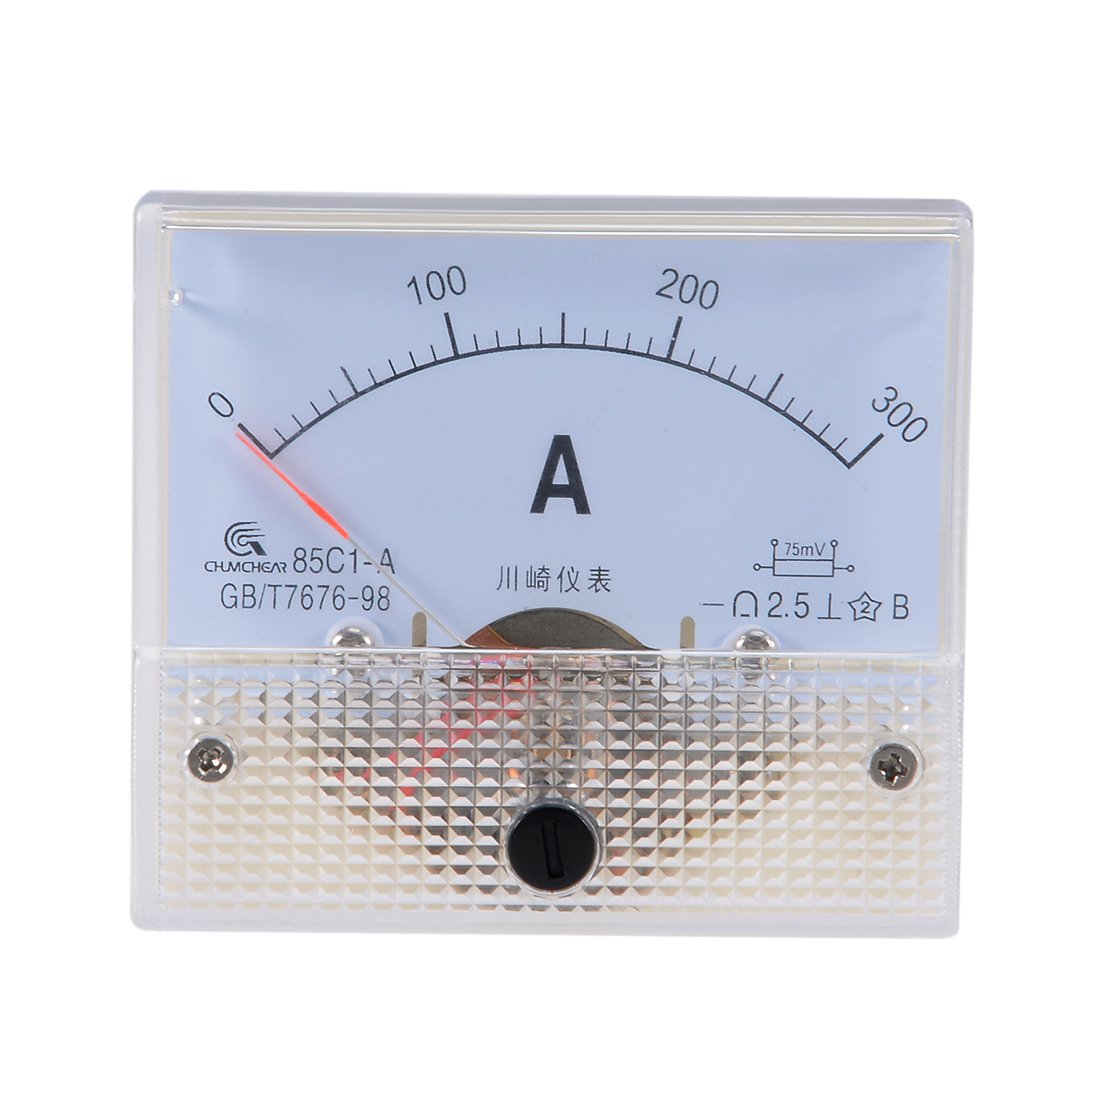 uxcell 91C4-A Analog Current Panel Meter DC 1A Ammeter for Circuit Testing Ampere Tester Gauge 1 PCS a18042000ux0431